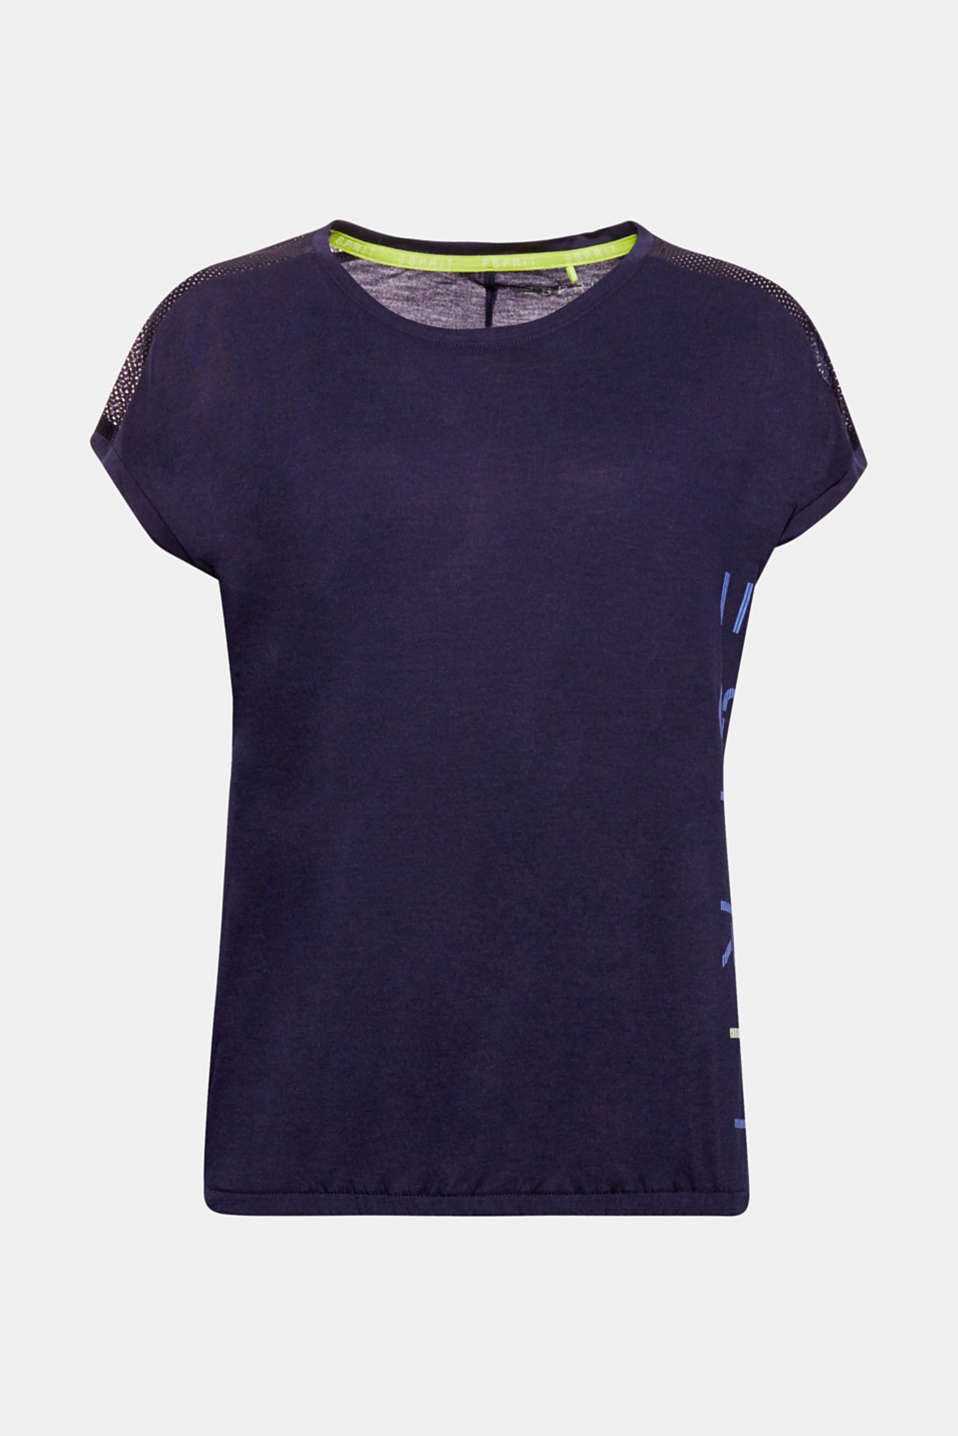 This soft sports top with a logo print at the side, mesh inserts on the shoulders and narrow, elasticated hem is casual, lightweight and airy!